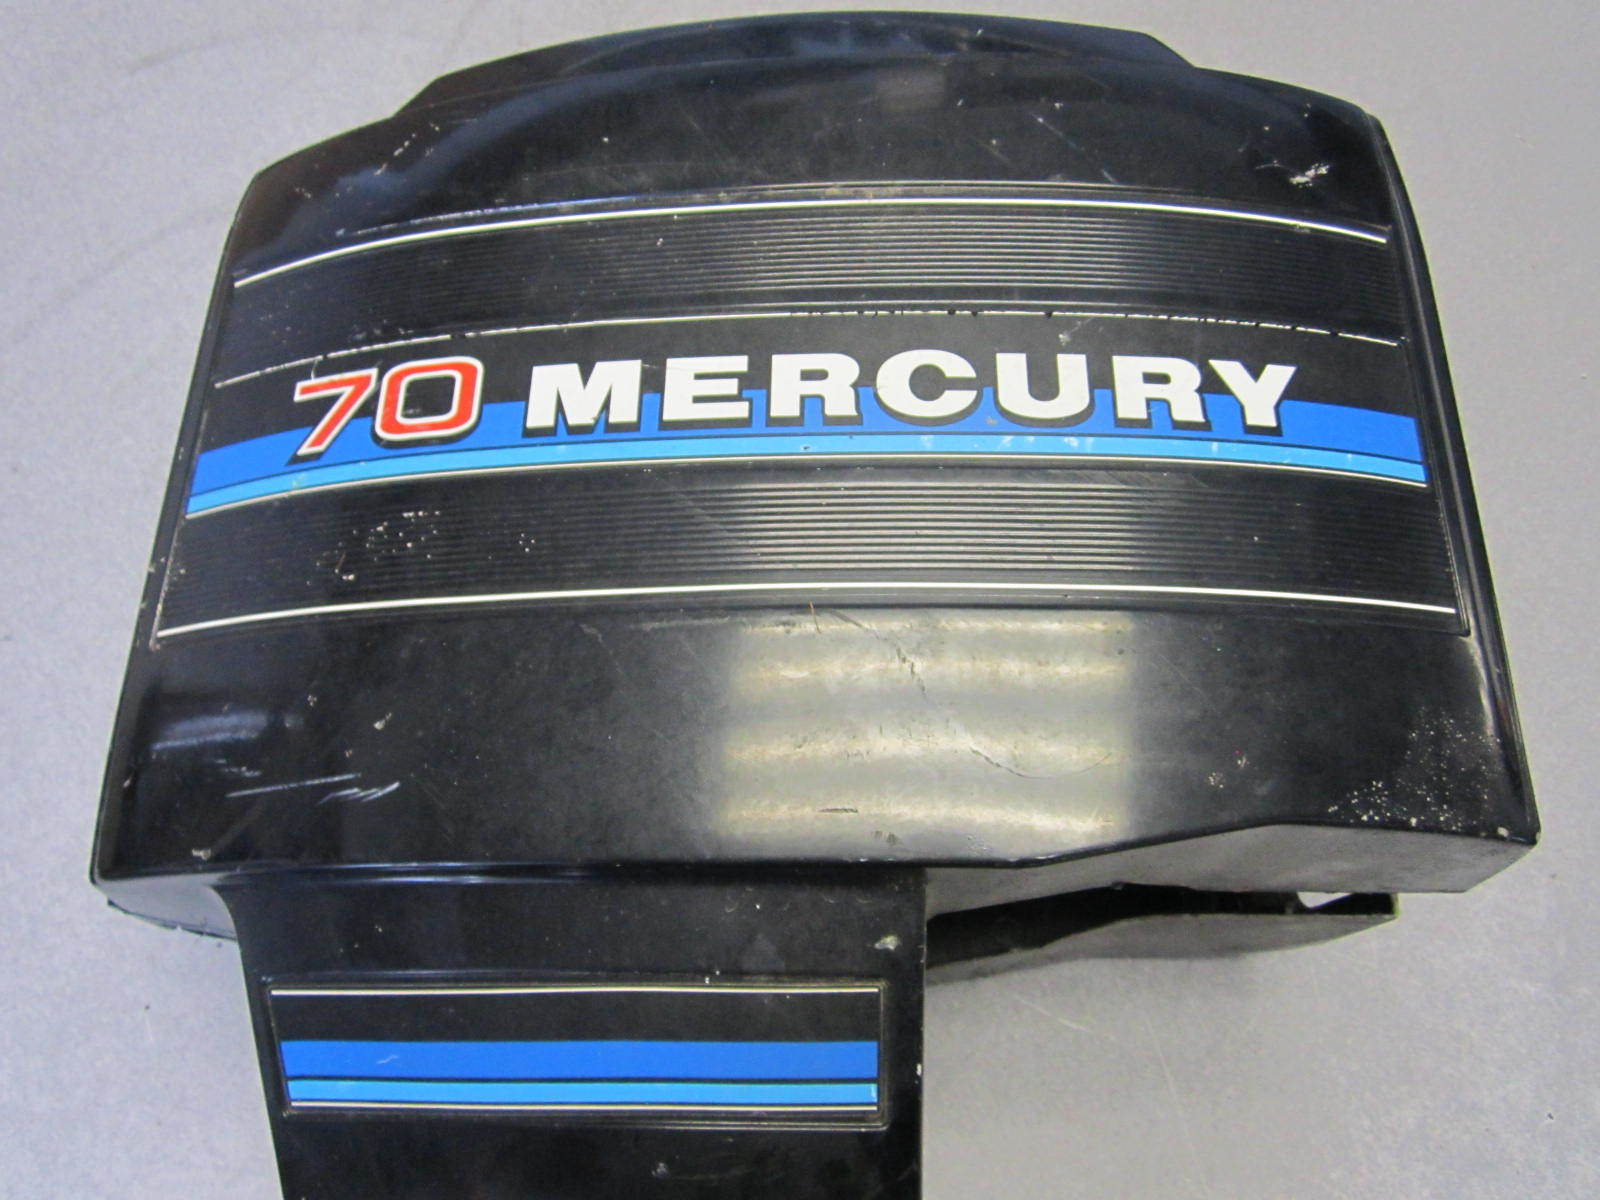 Mercury 70 hp outboard motor cowling cover clam shell ebay for Mercury outboard motor cowling